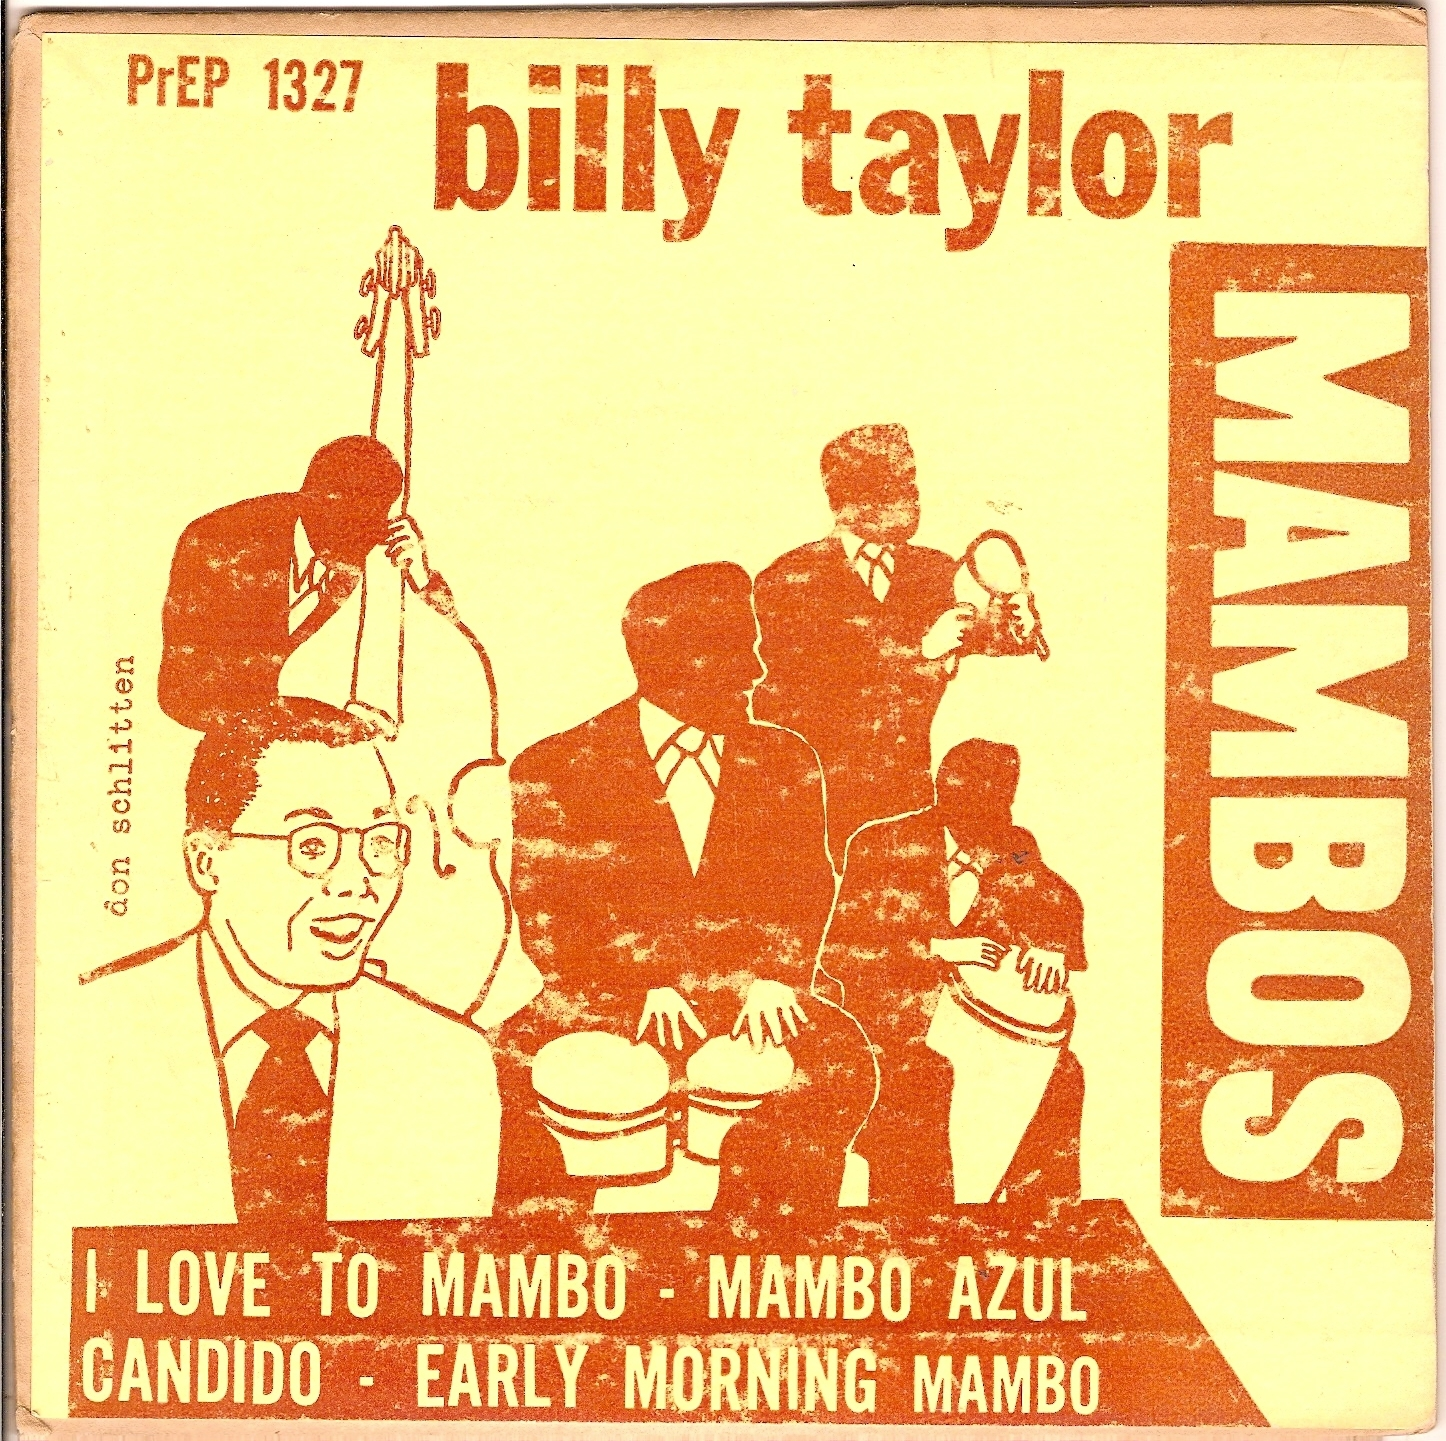 Billy Taylor, Early Morning Mambo (Prestige PrEP 1327, cover)